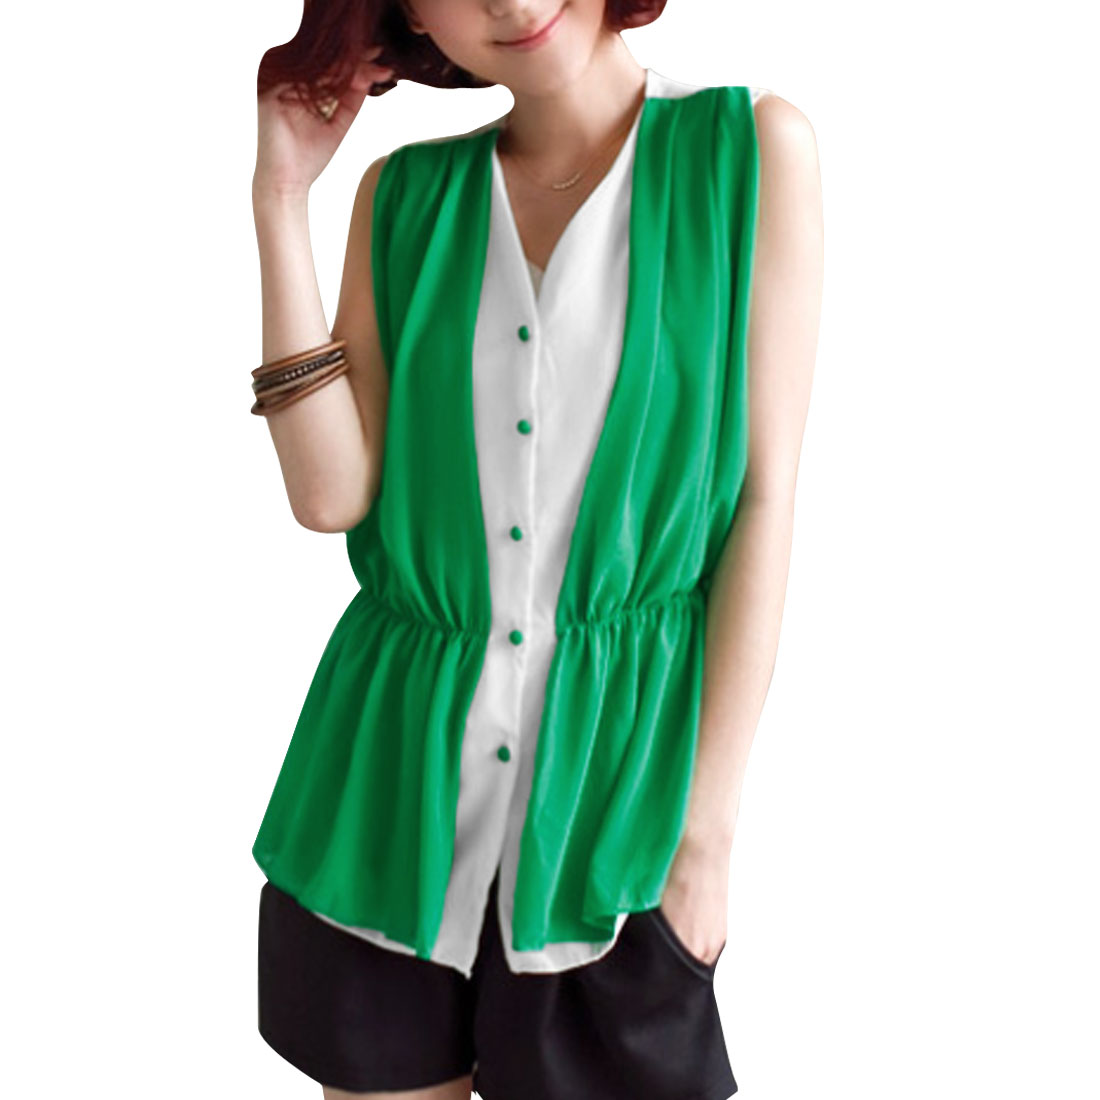 Lady White Green V Neck Sleeveless Elastic Waist Layered Shirts Top XS